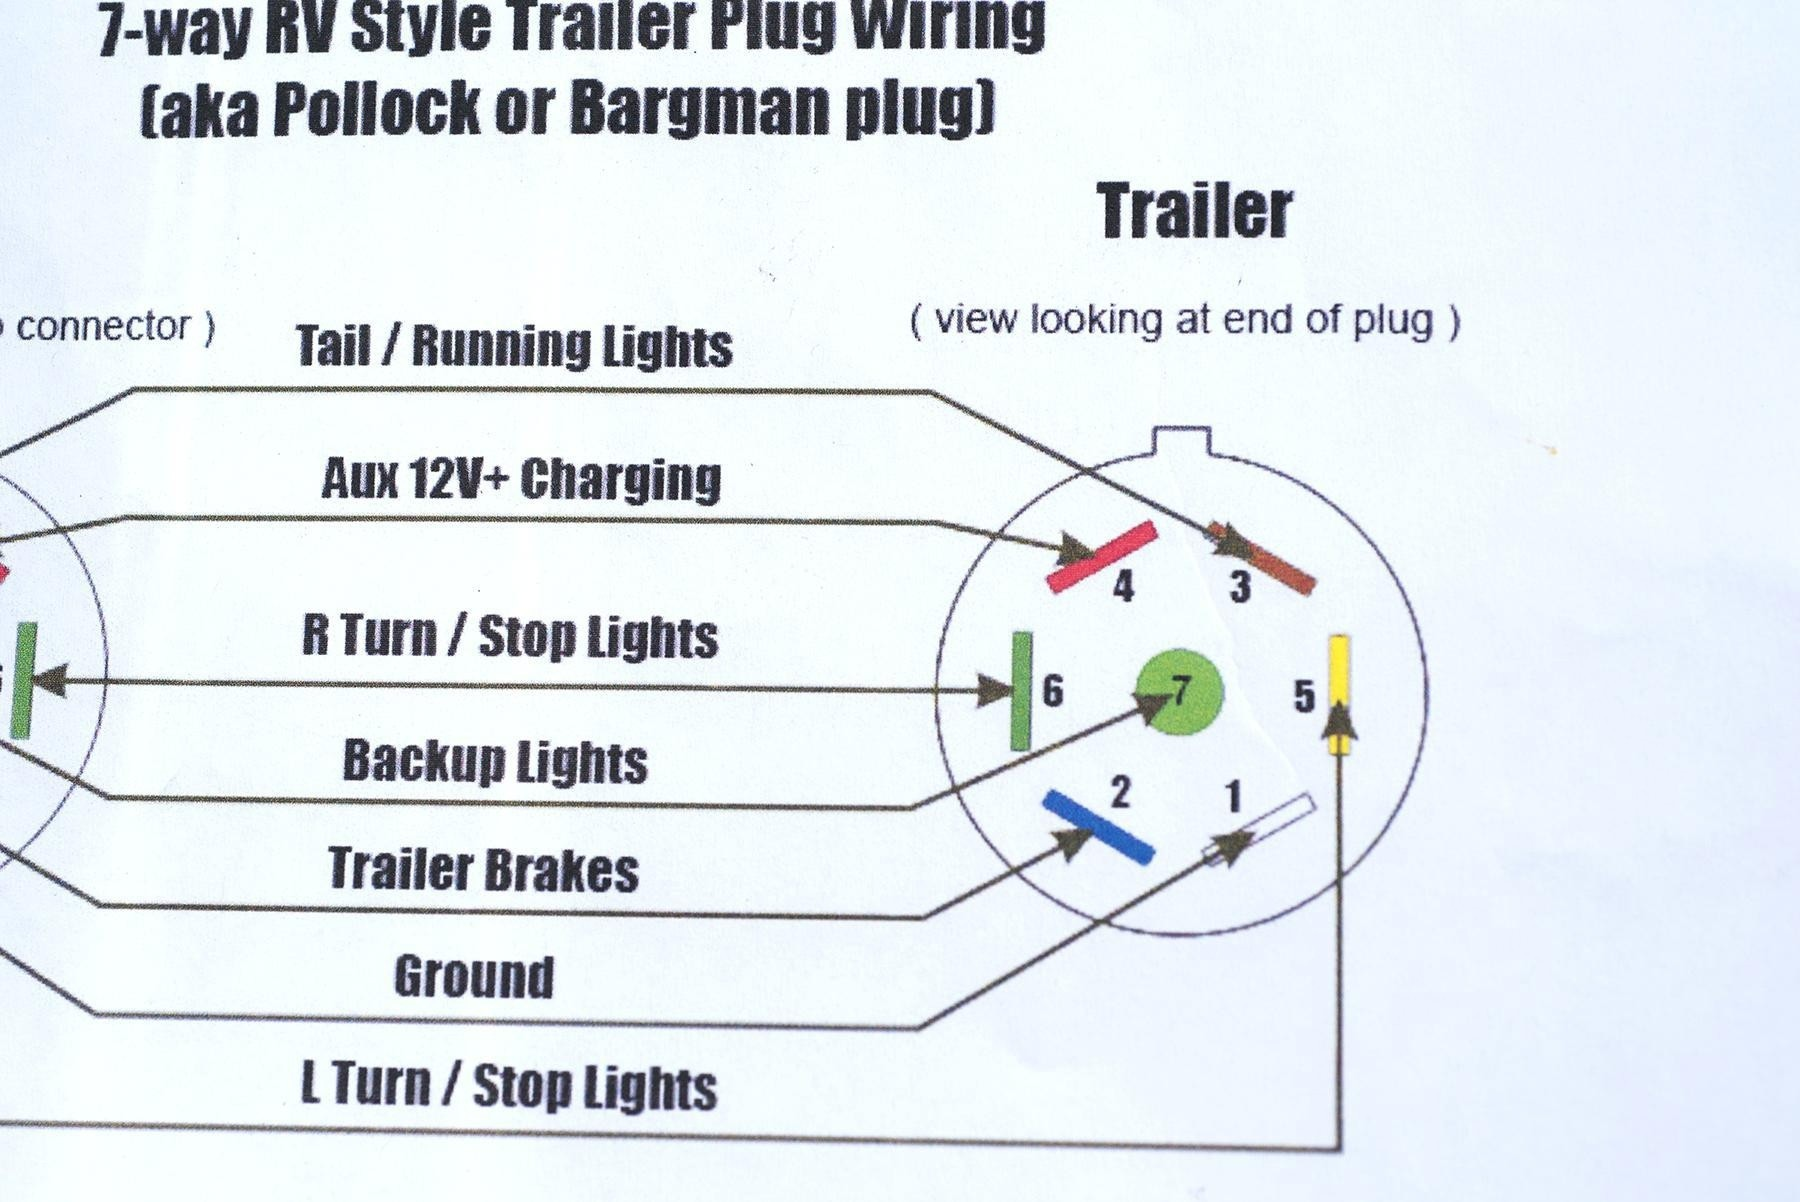 Truck Trailer Plug Wiring Diagram 7 Way Plug Wire Diagram Collection Of Truck Trailer Plug Wiring Diagram